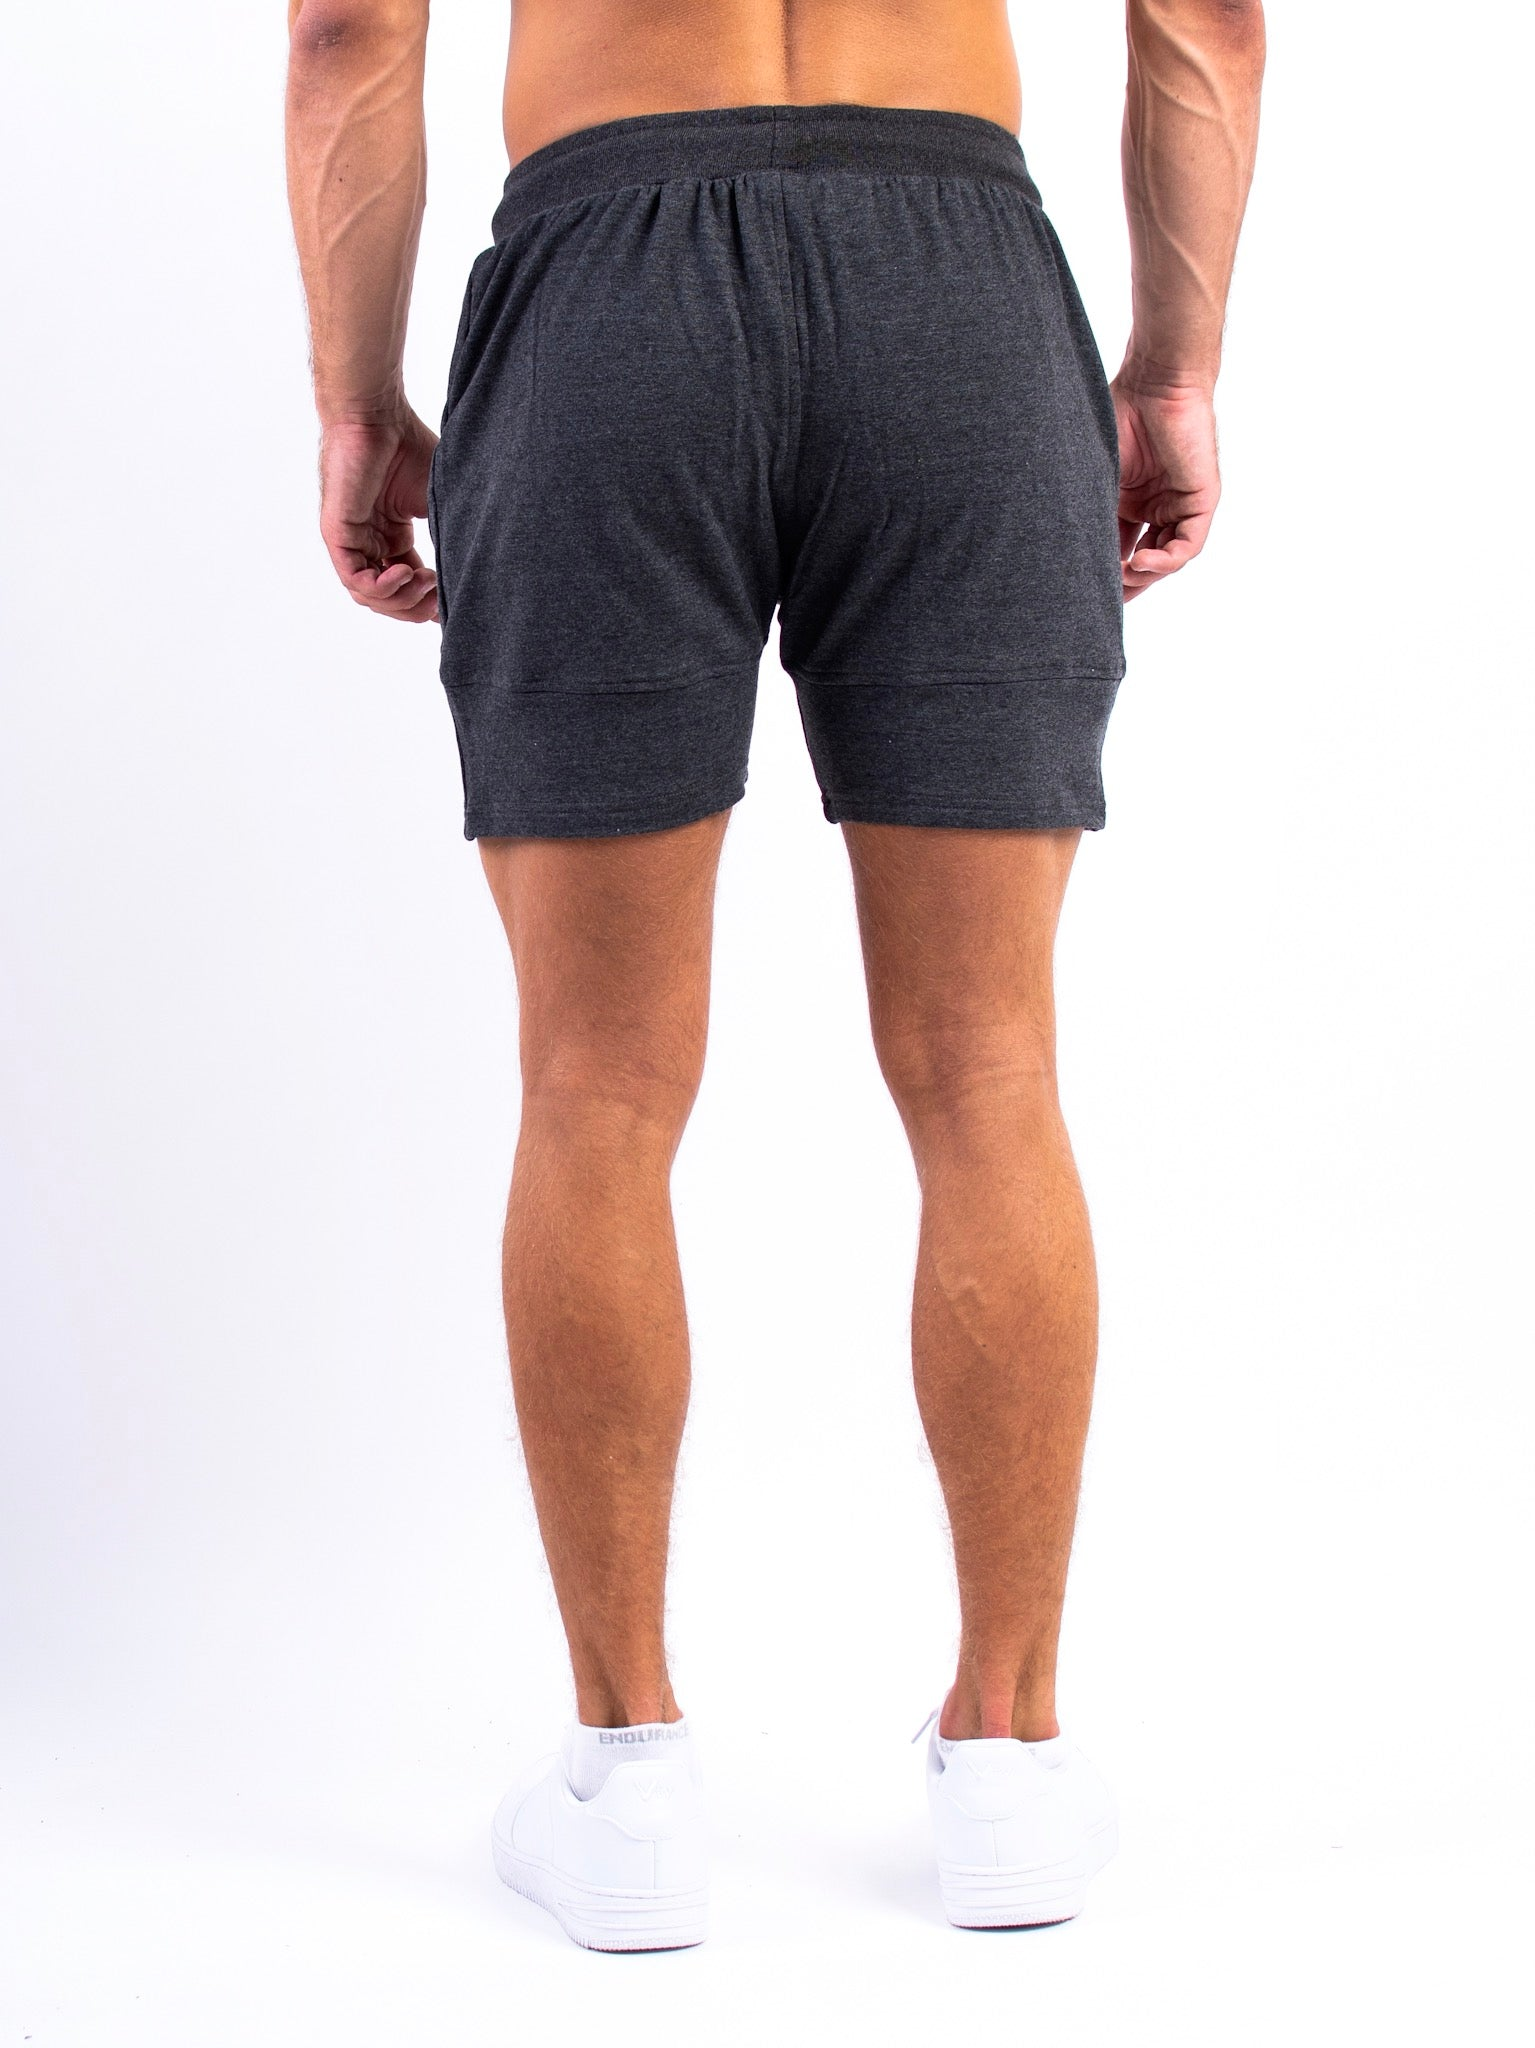 Lionn Fitted Shorts Charcoal